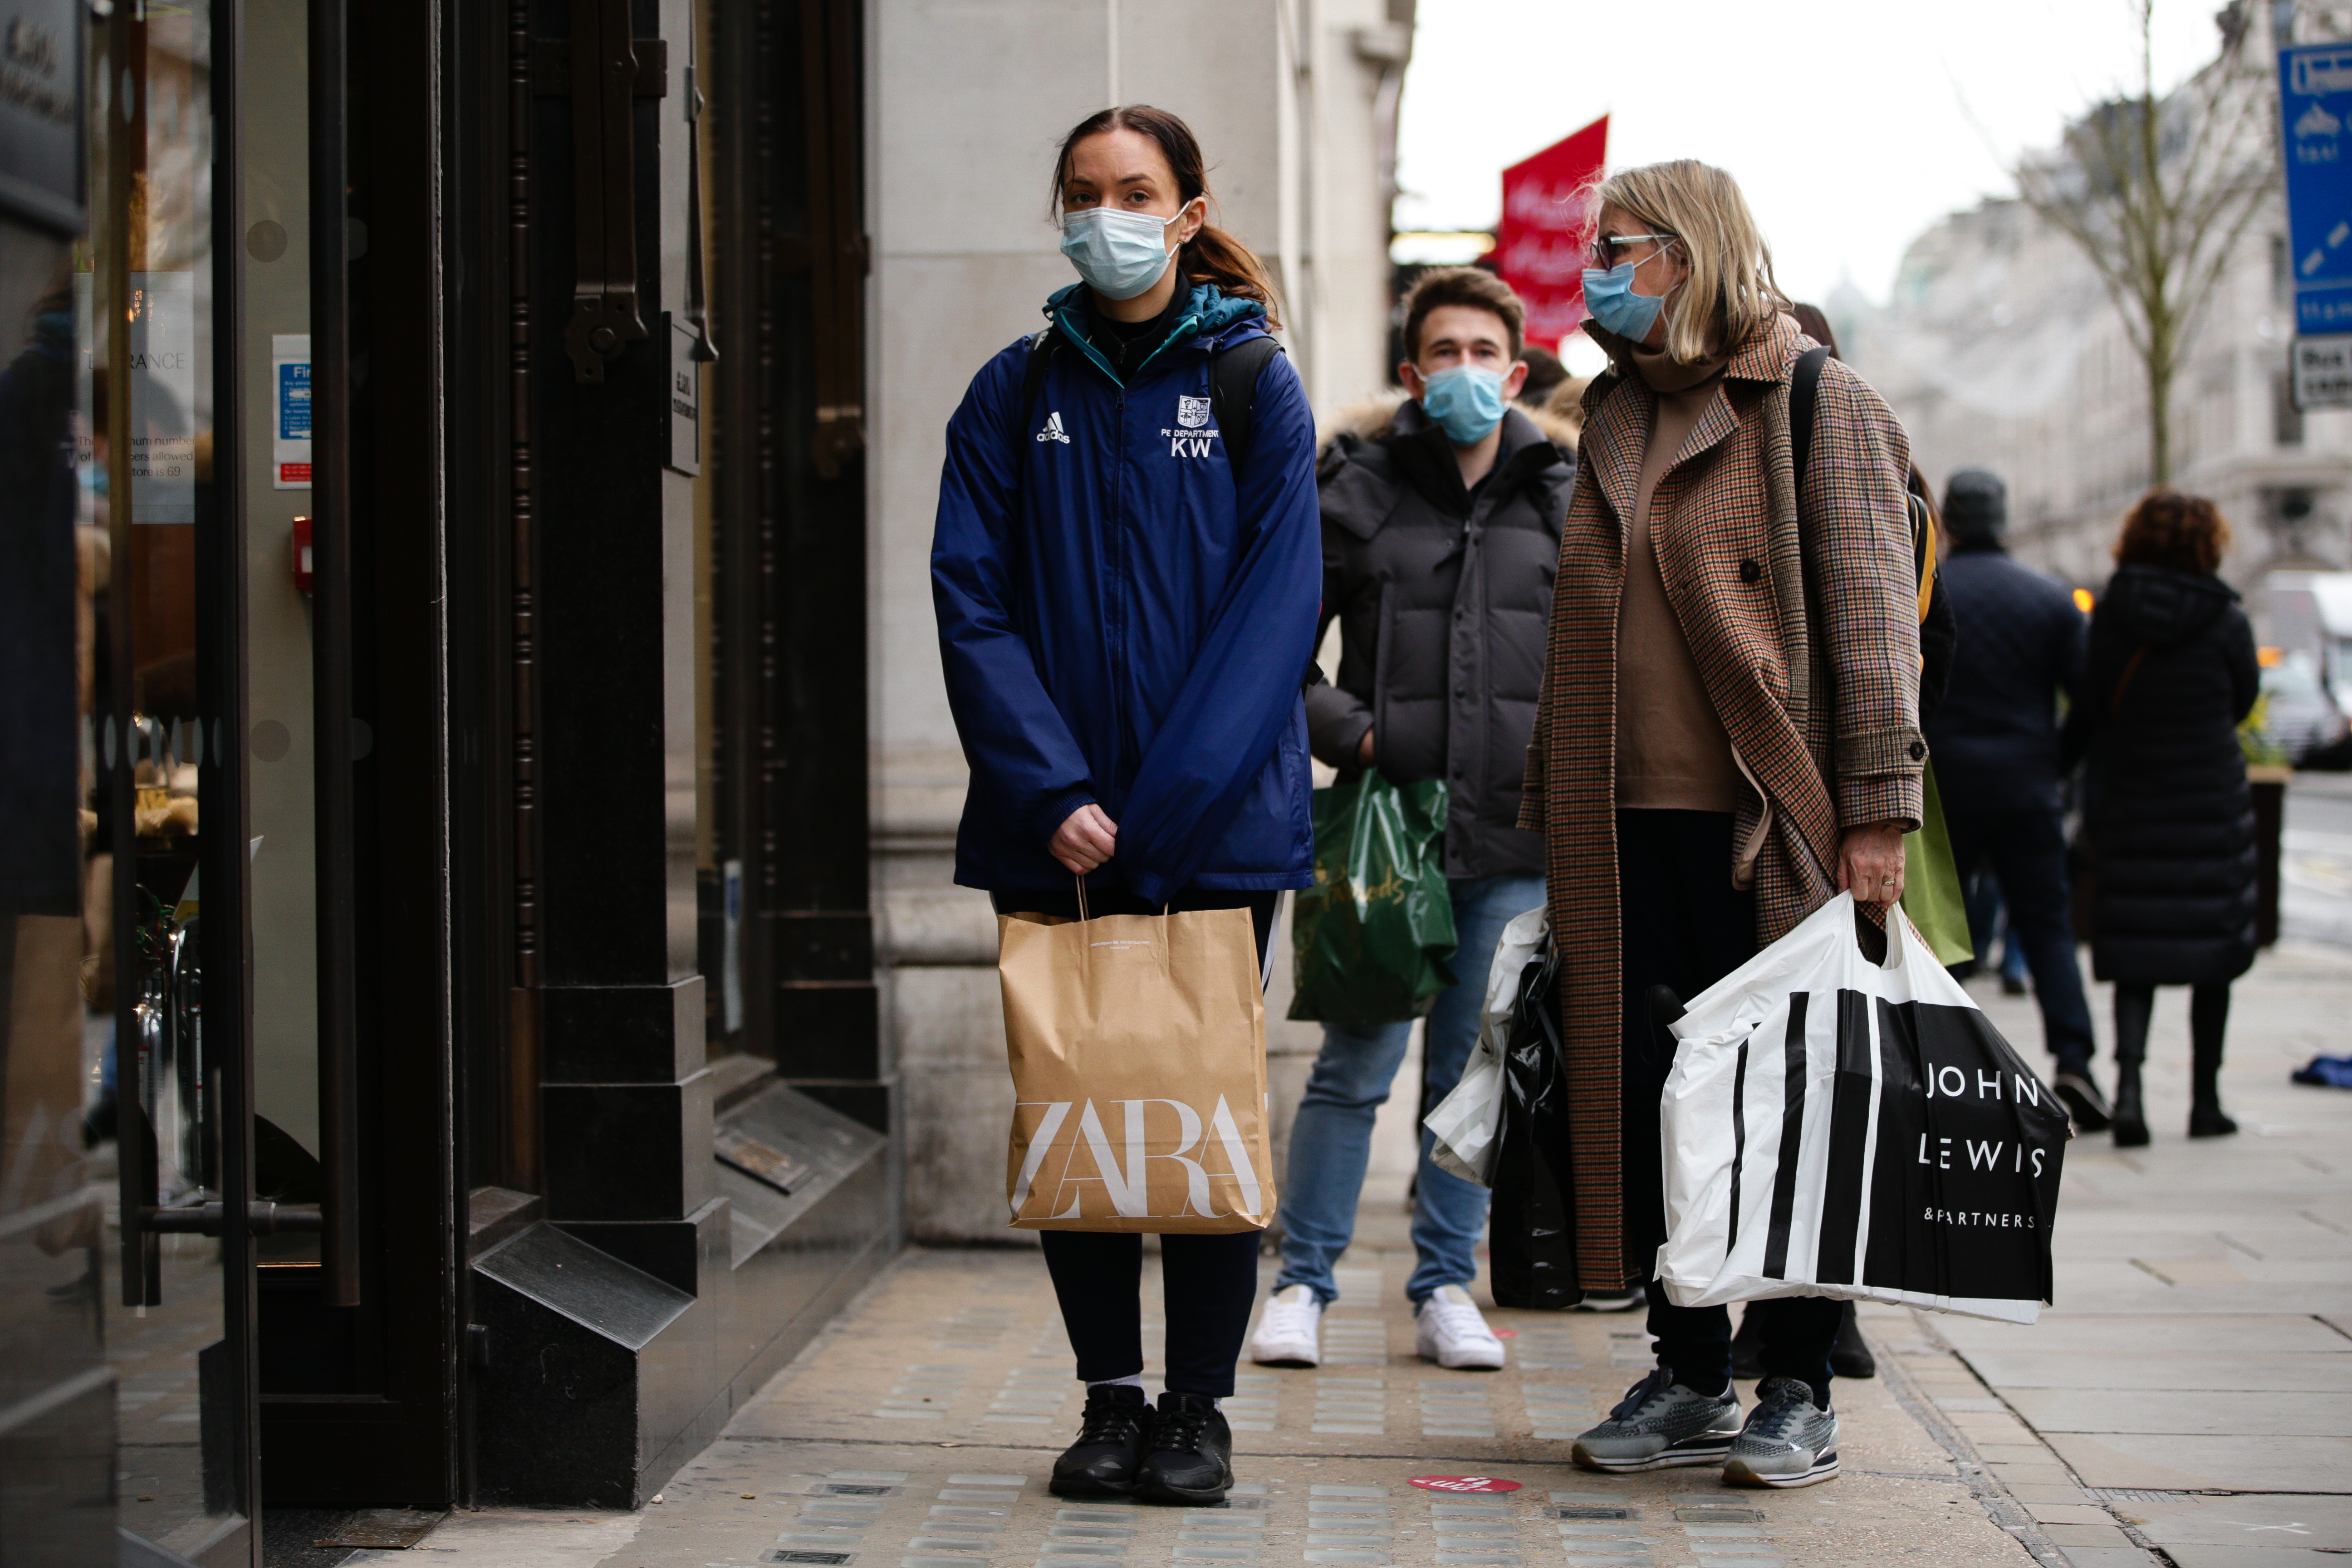 Shoppers wearing face masks queue to enter a homeware store on Regent Street in London, England, on December 4, 2020. London has returned to so-called Tier 2 or 'high alert' coronavirus restrictions since the end of the four-week, England-wide lockdown on Wednesday, meaning a reopening of non-essential shops and hospitality businesses as the festive season gets underway. Rules under all three of England's tiers have been strengthened from before the November lockdown, however, with pubs and restaurants most severely impacted. In London's West End, Oxford Street and Regent Street were both busy with Christmas shoppers this afternoon, meanwhile, with the retail sector hoping for a strong end to one of its most difficult years. (Photo by David Cliff/NurPhoto via Getty Images)